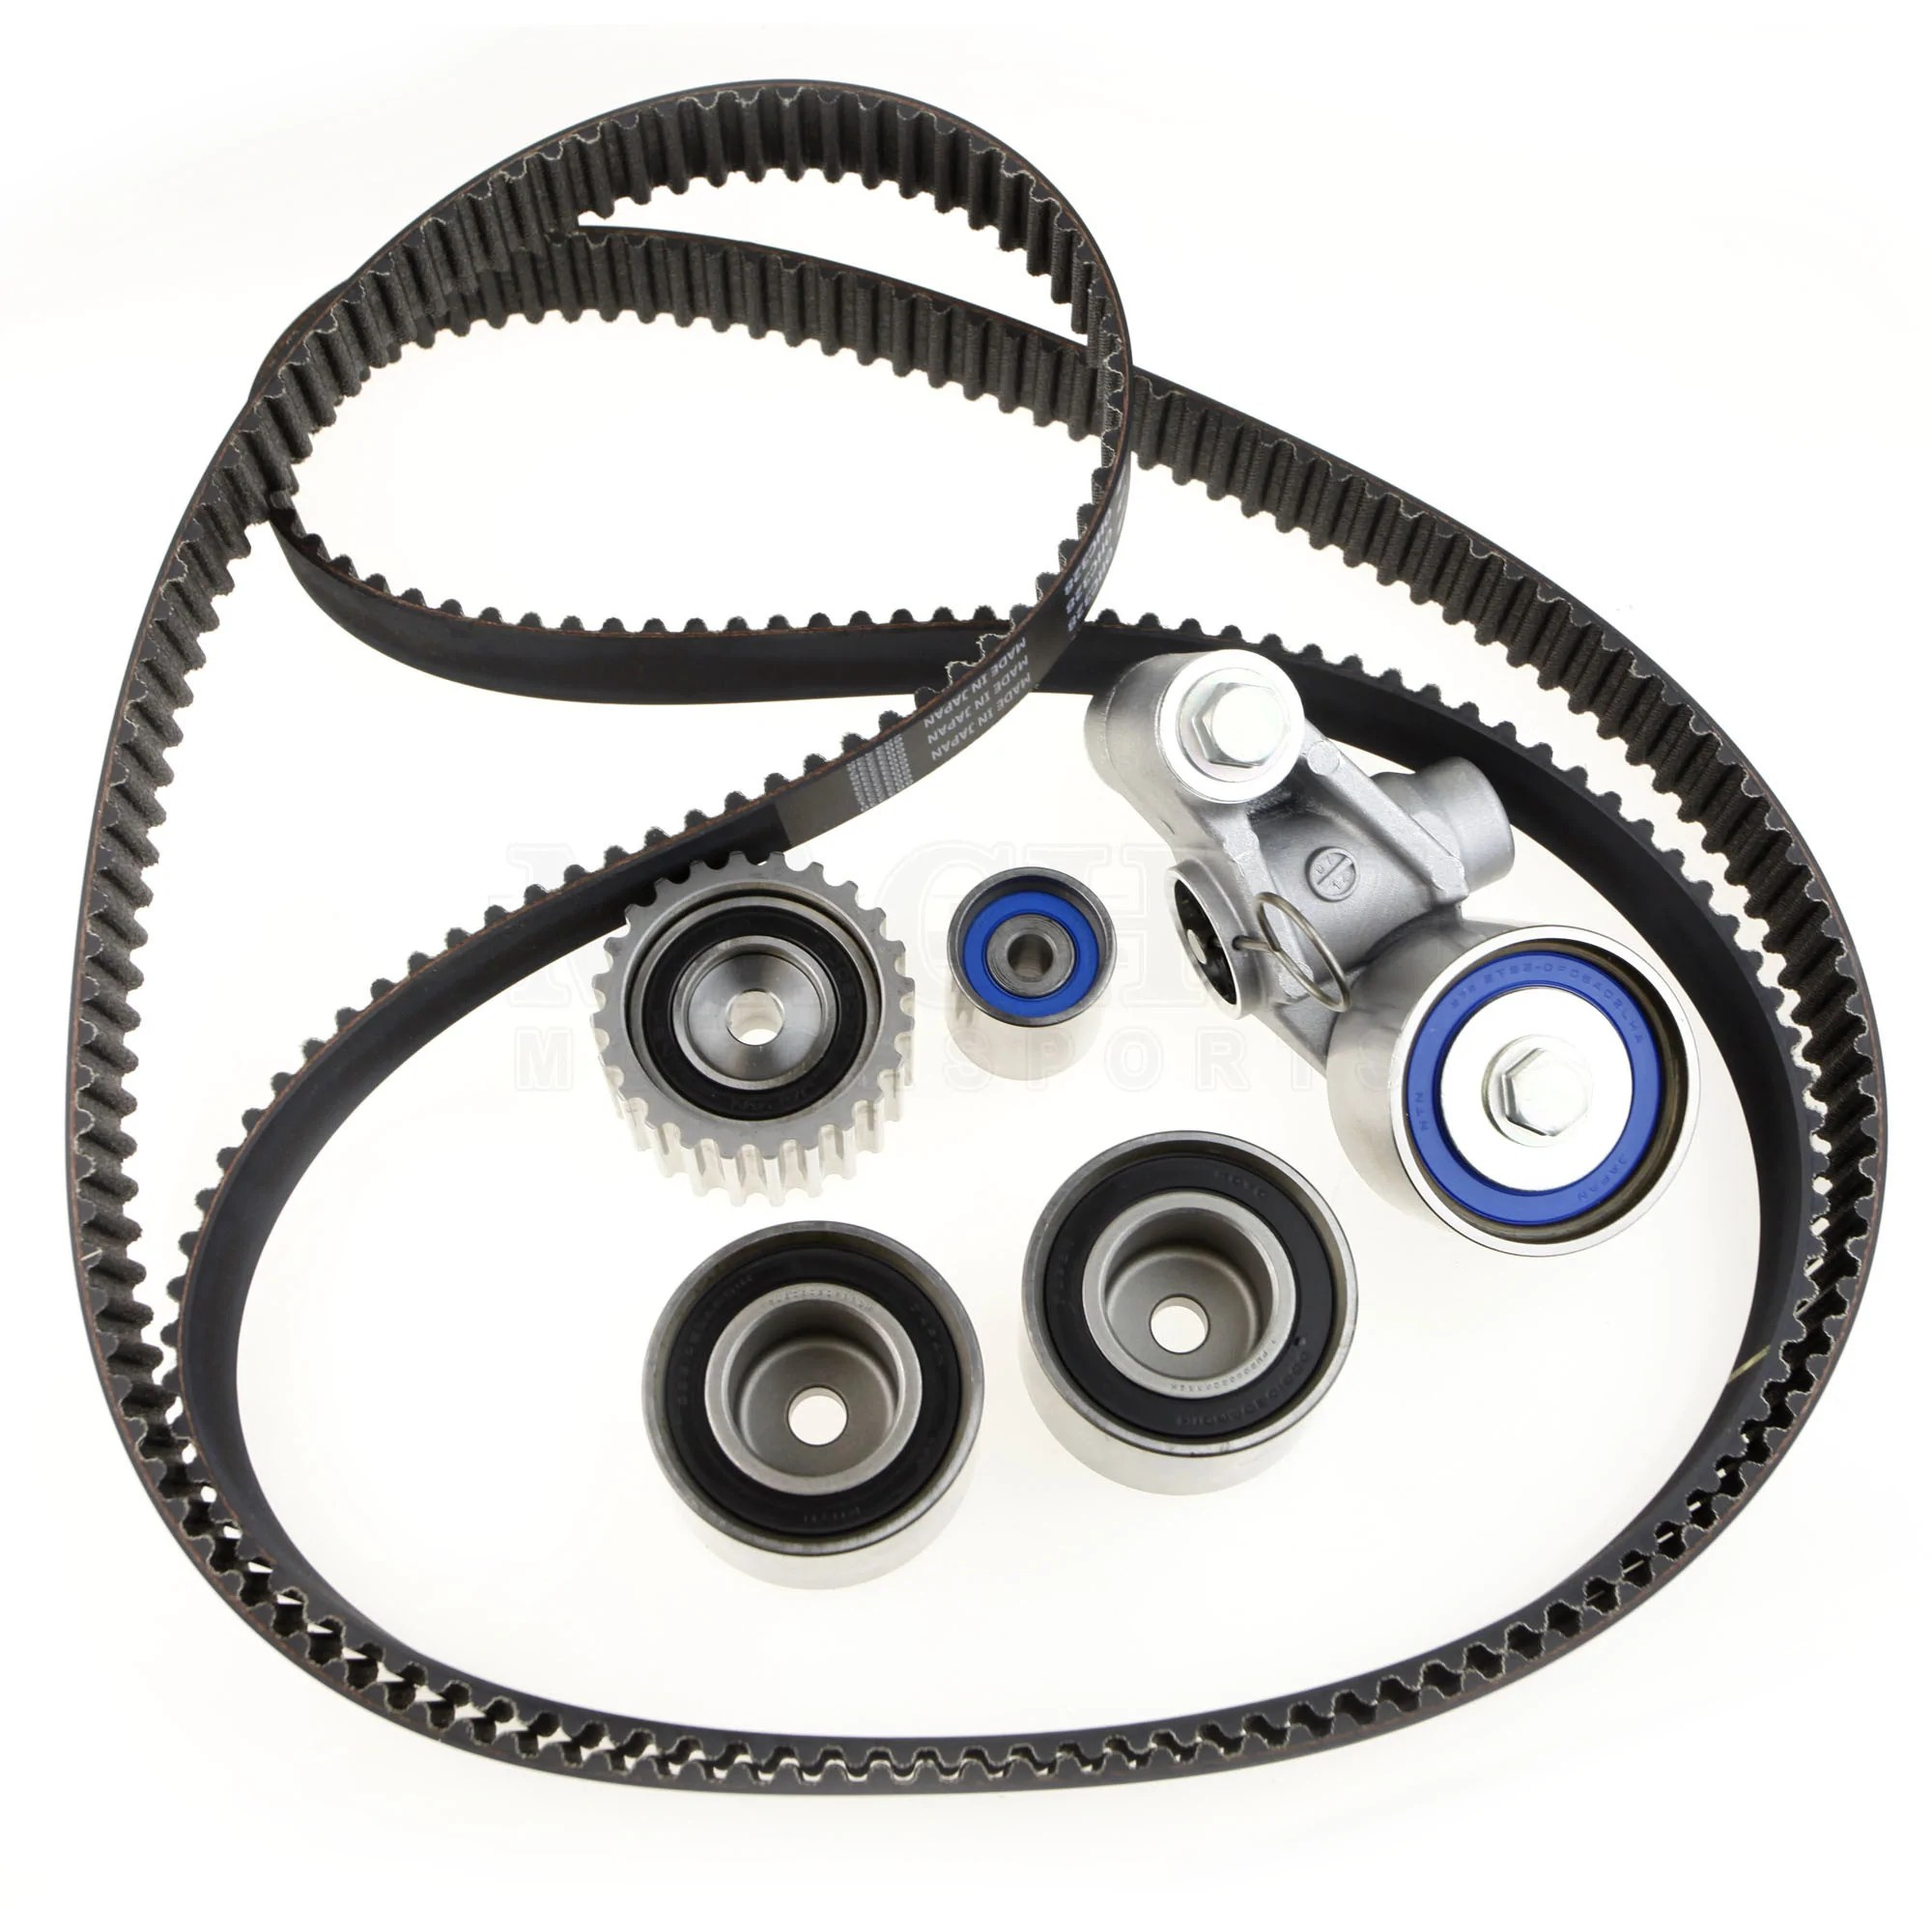 medium resolution of oem quality timing belt kit without water pump 2002 2014 wrx 2004 2018 sti 2003 2013 forester 2005 2009 legacy gt outback xt